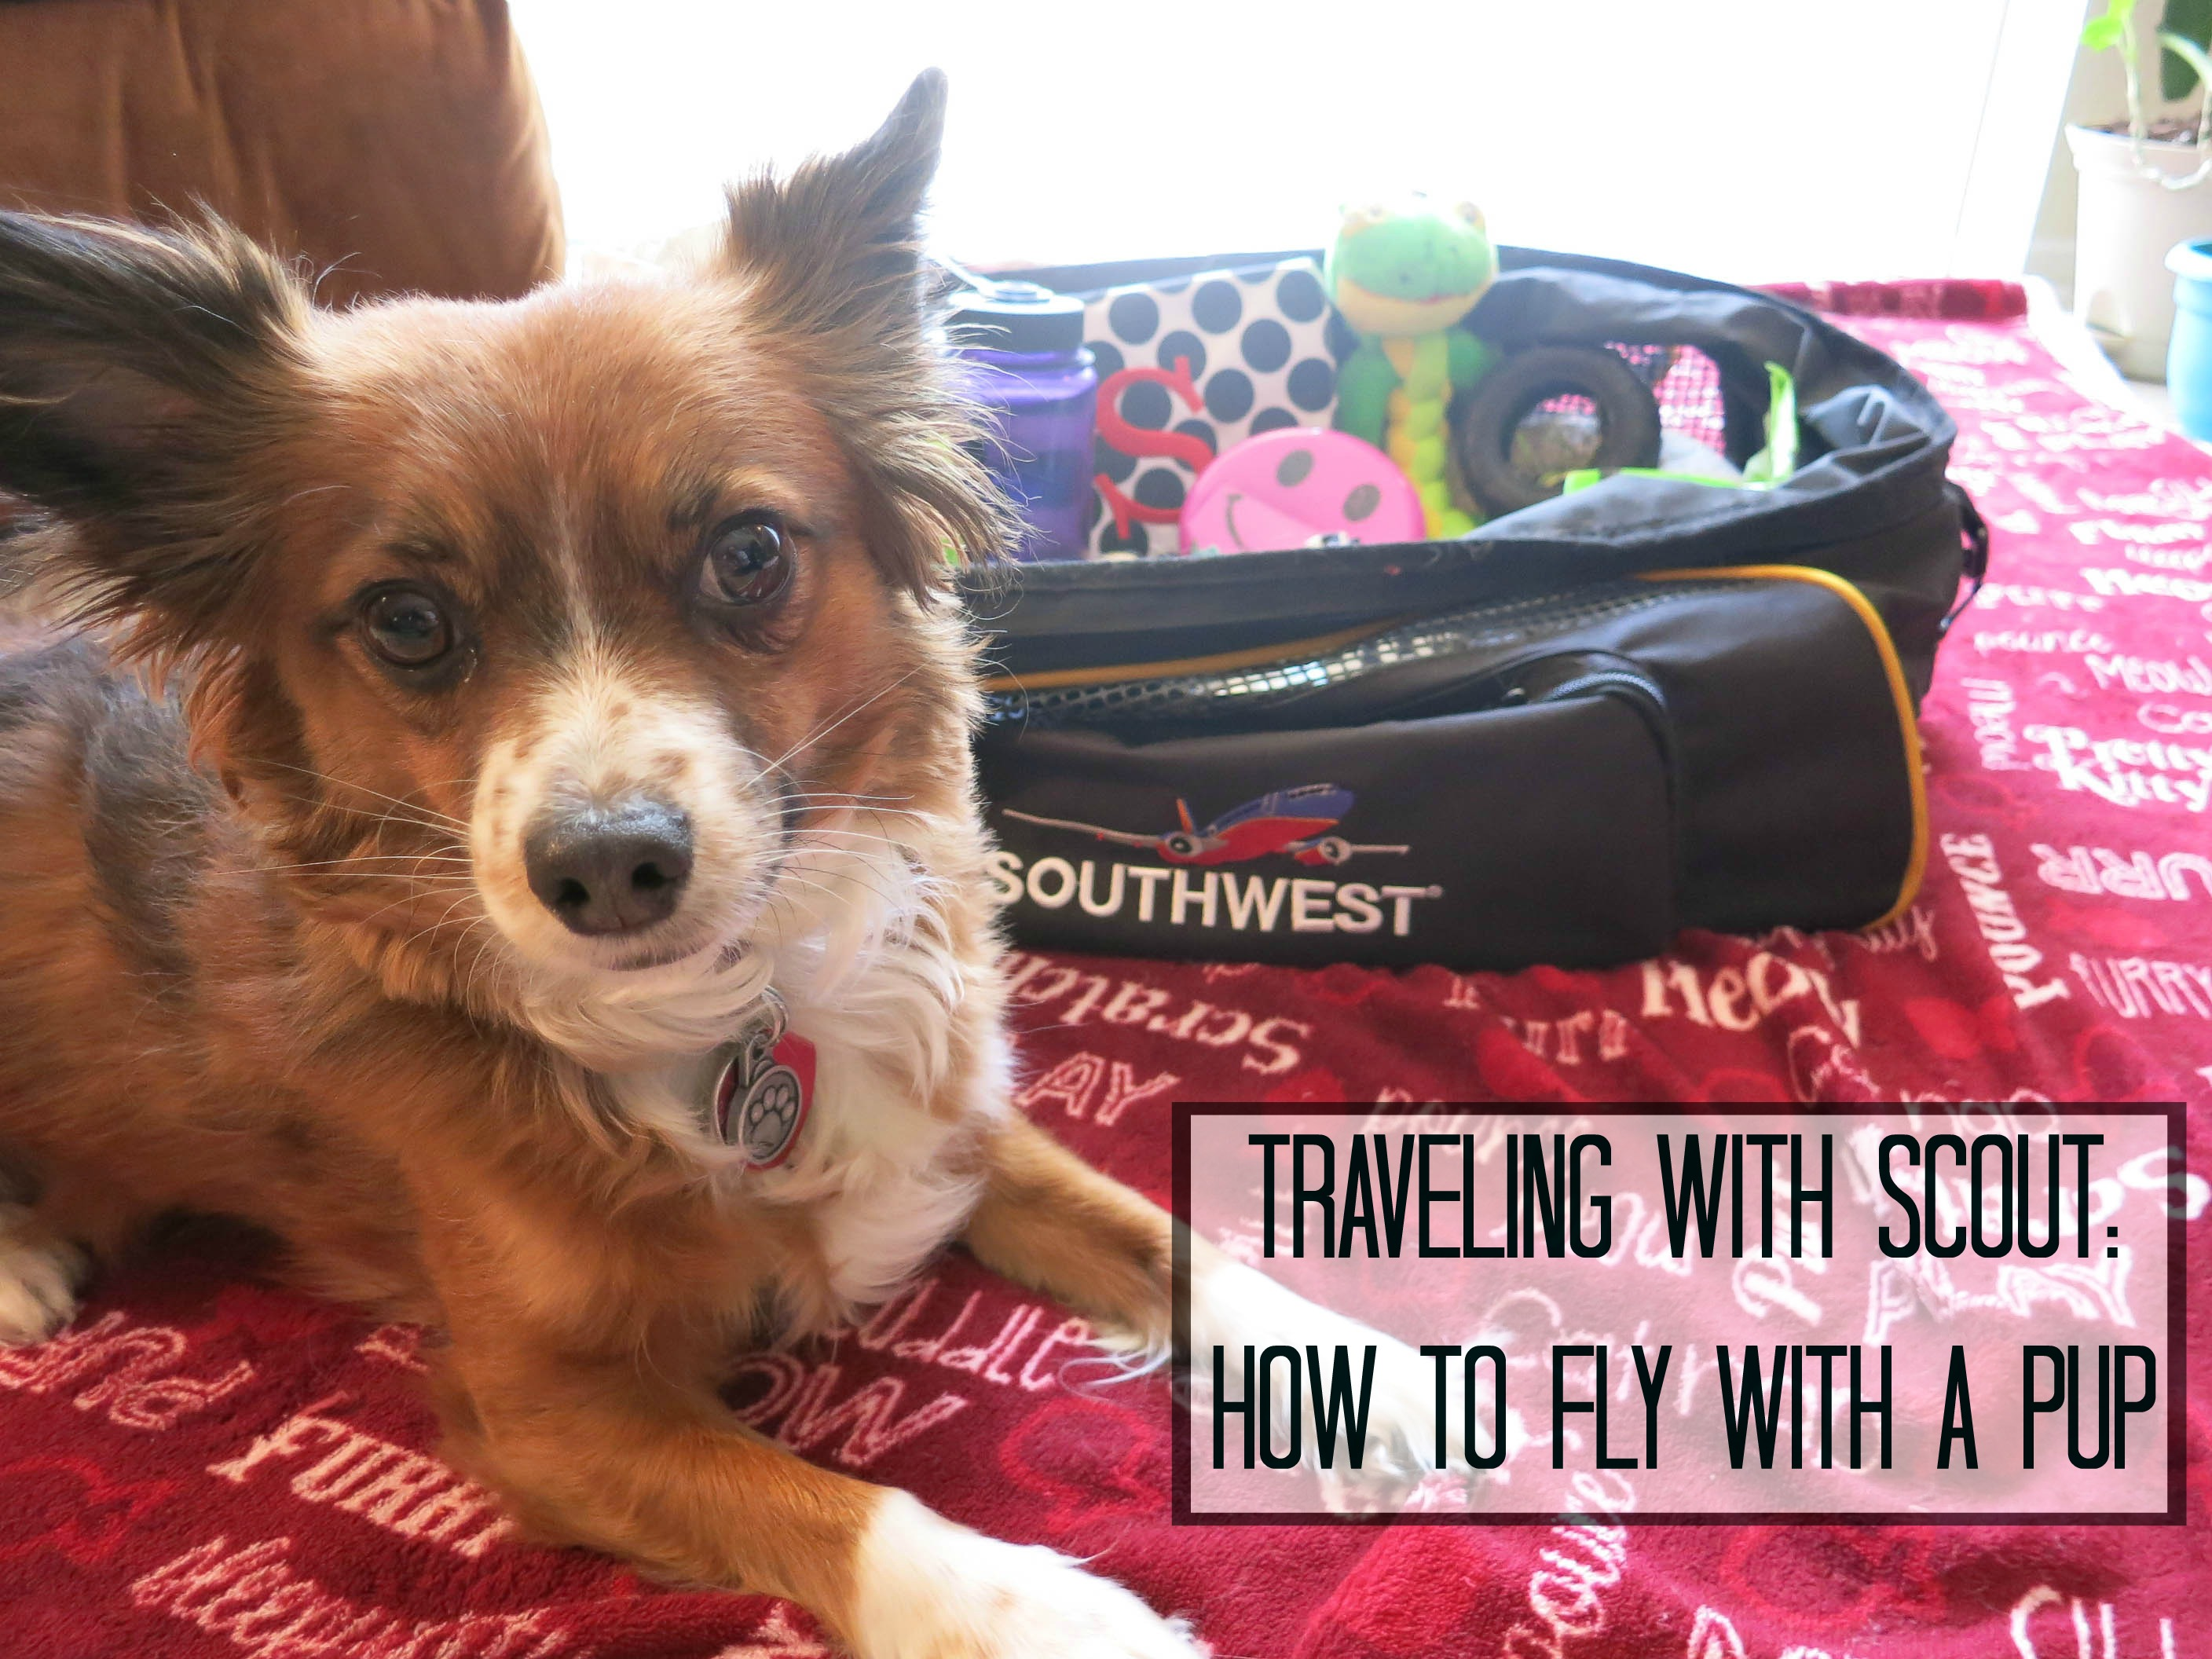 How to fly with a pet